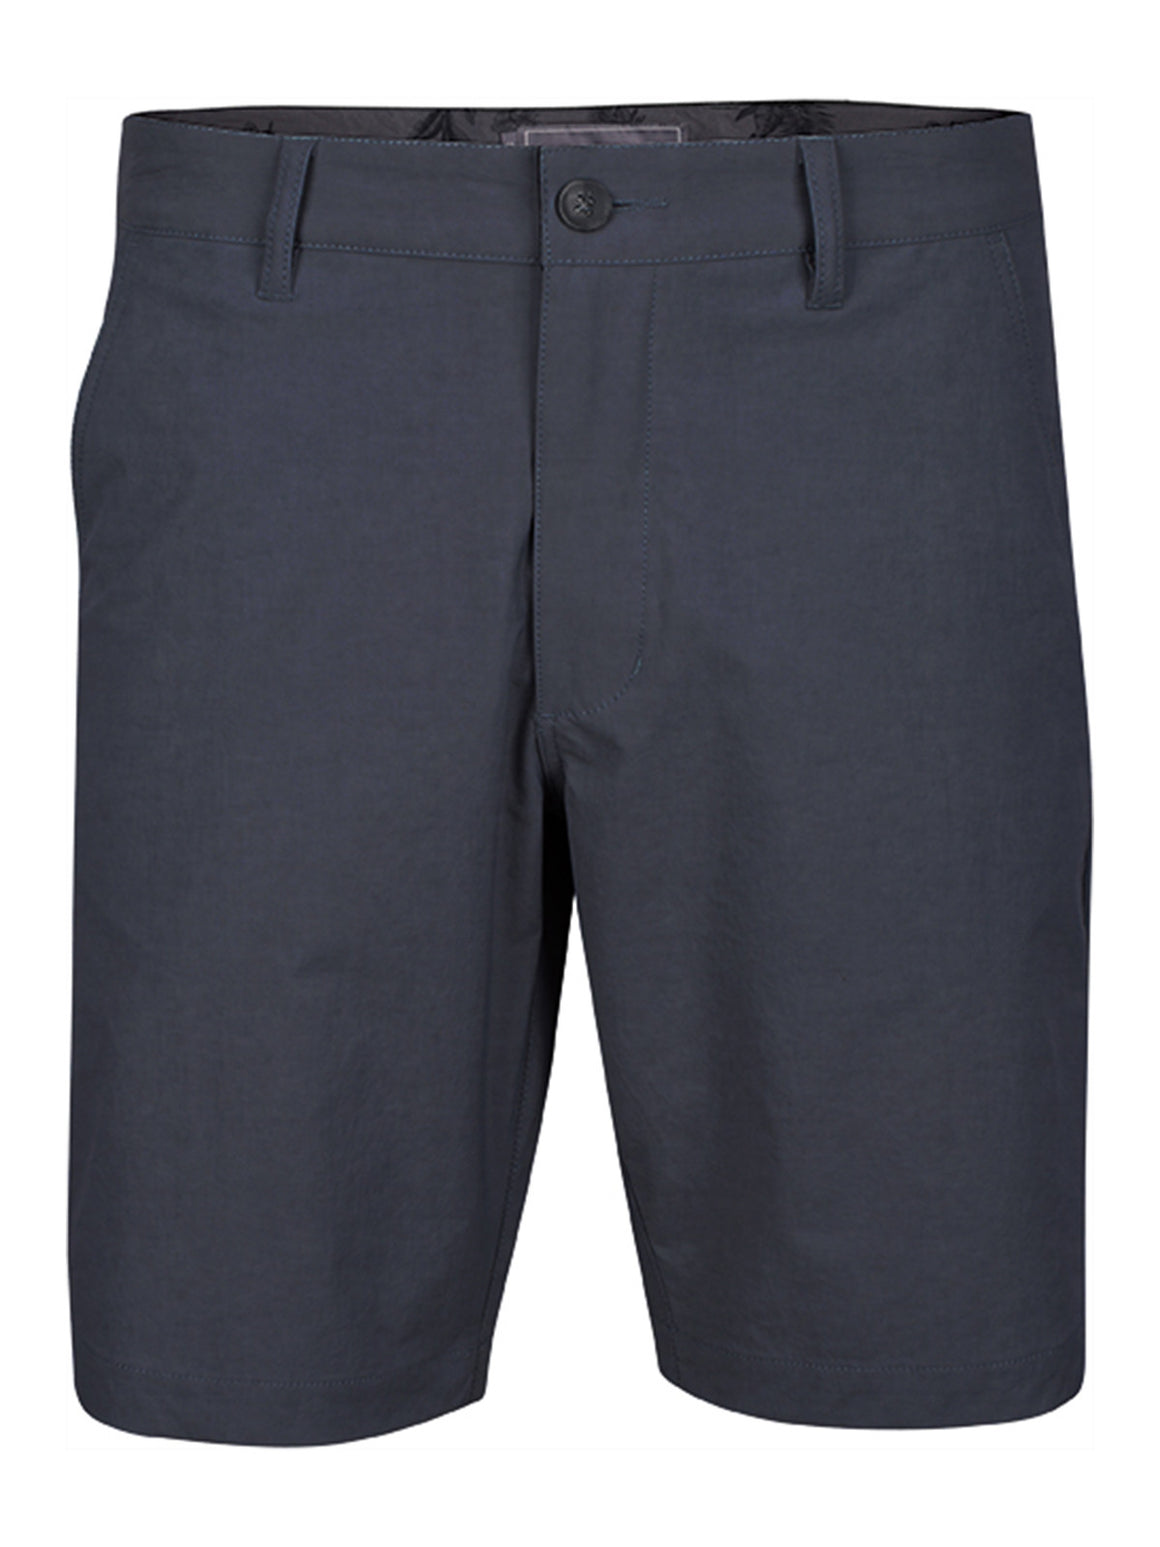 Traveler FIT101 Short - Graphite